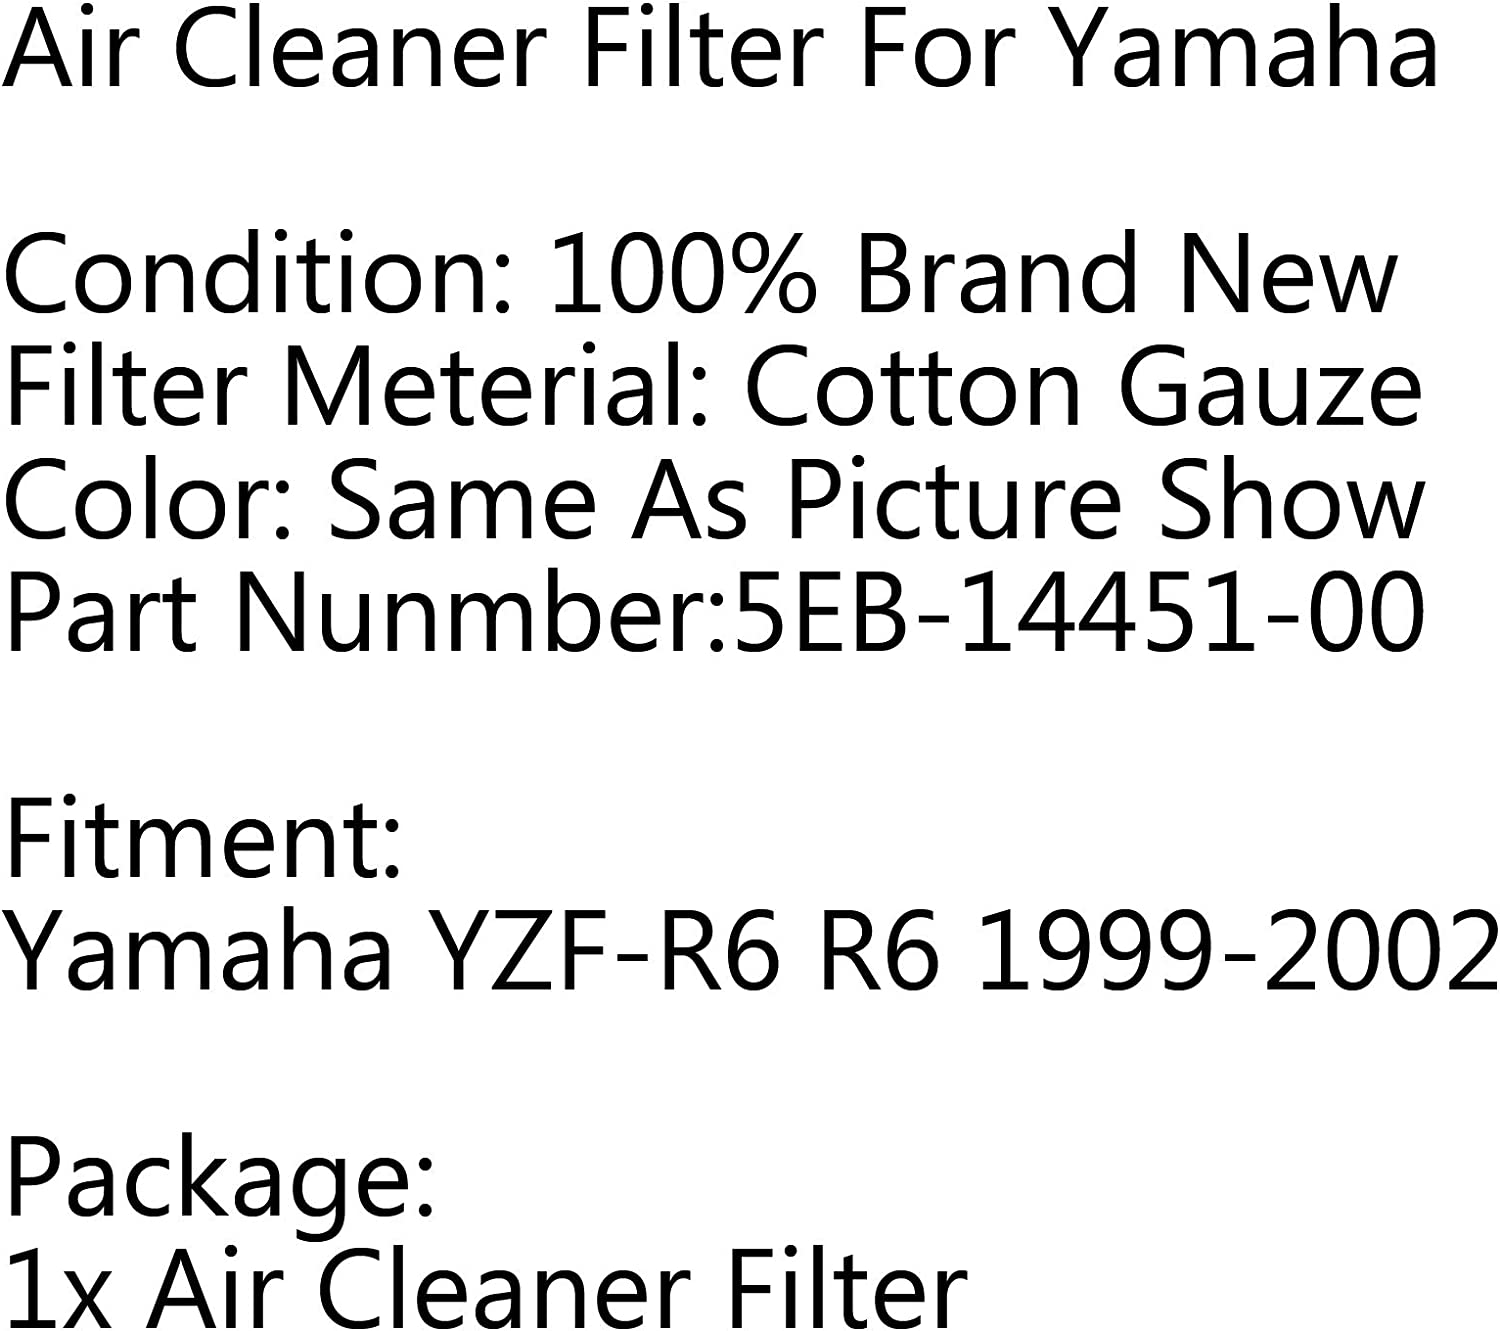 Topteng Air Filter Cleaner Element 5EB-14451-00 for Yama-ha YZF-R6 R6 1999-2002 2001